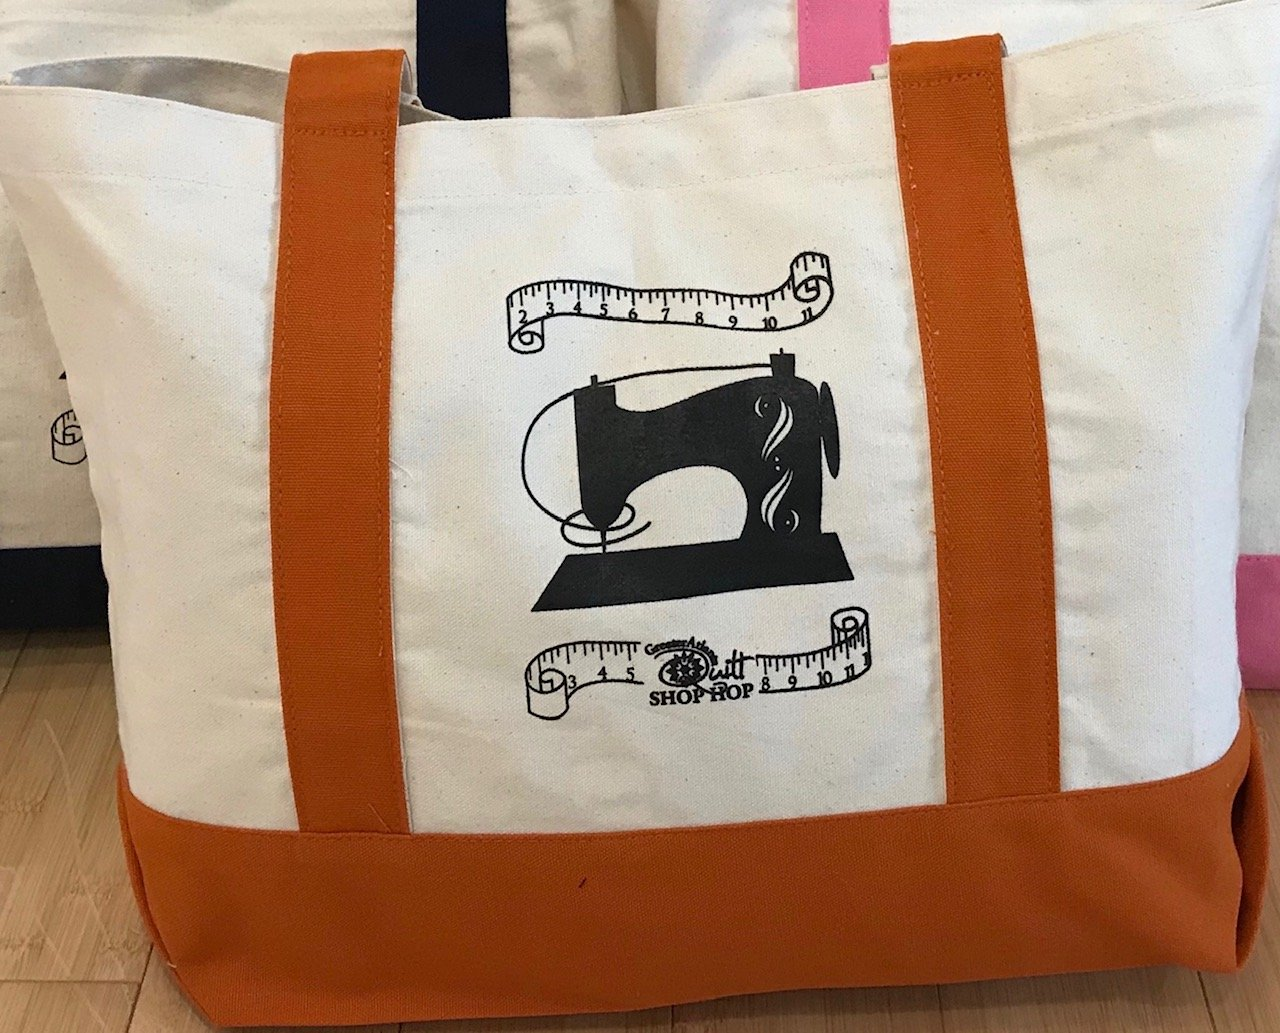 Shop Hop Tote Bag 2019